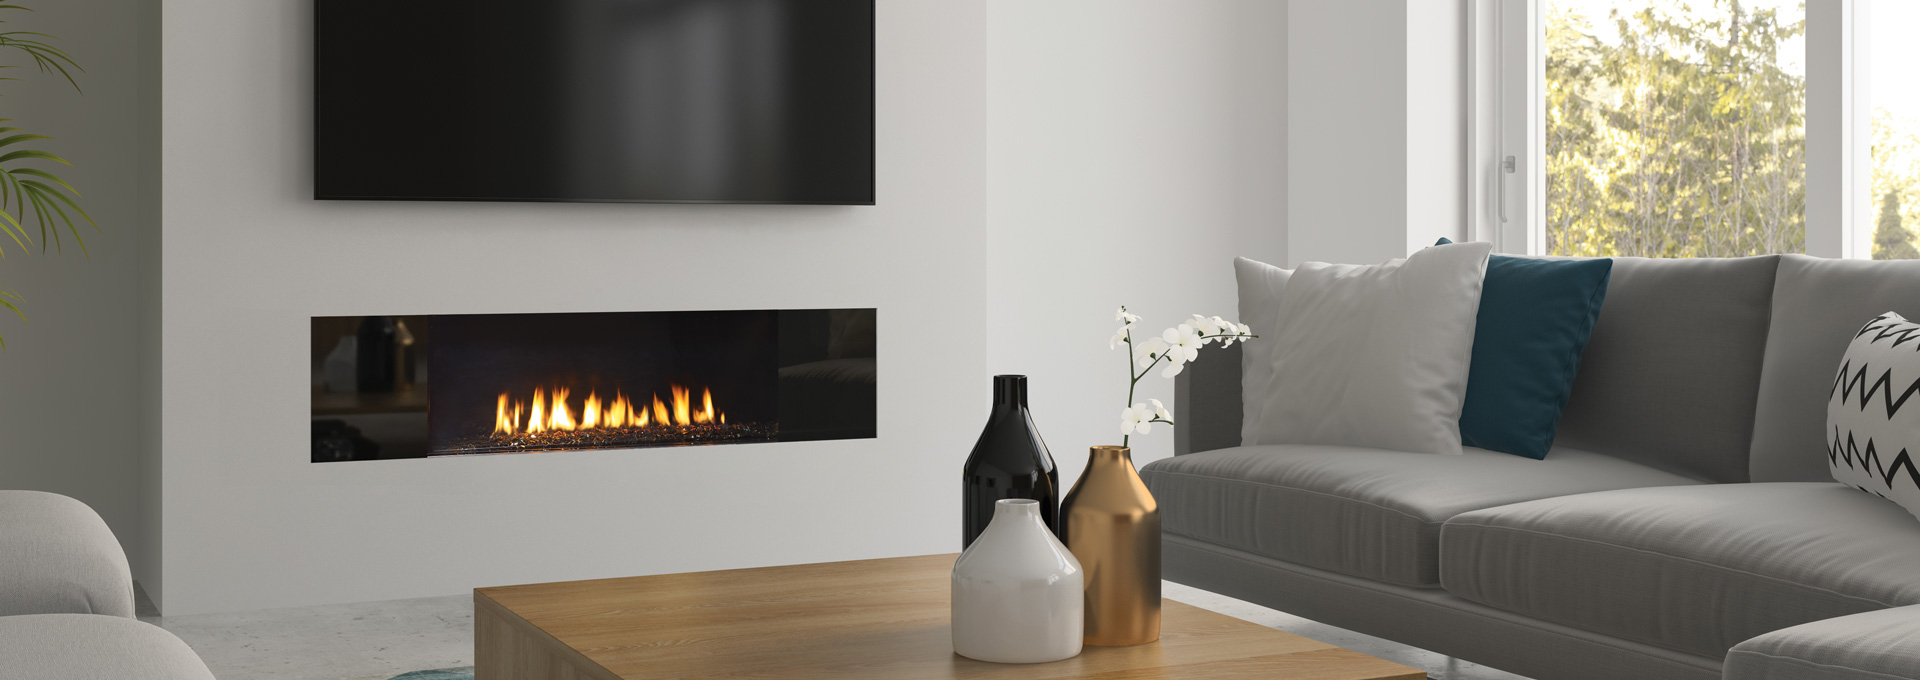 Regency City Series New York View 40 Modern Gas Fireplace